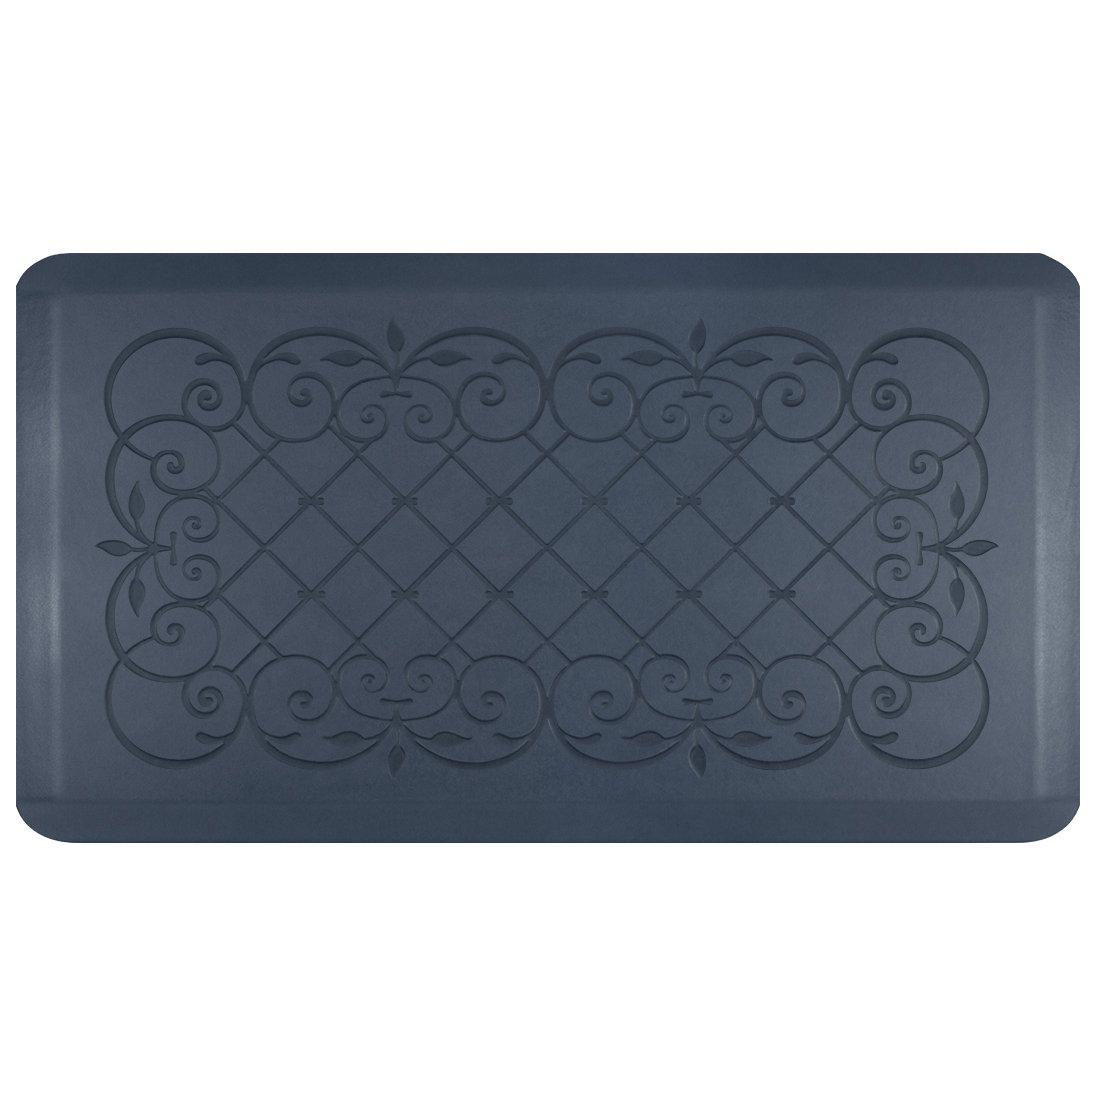 Smart Step Home Collection Anti-Fatigue Mat, Blue Lagoon, 36'' X 20'' by Smart Step